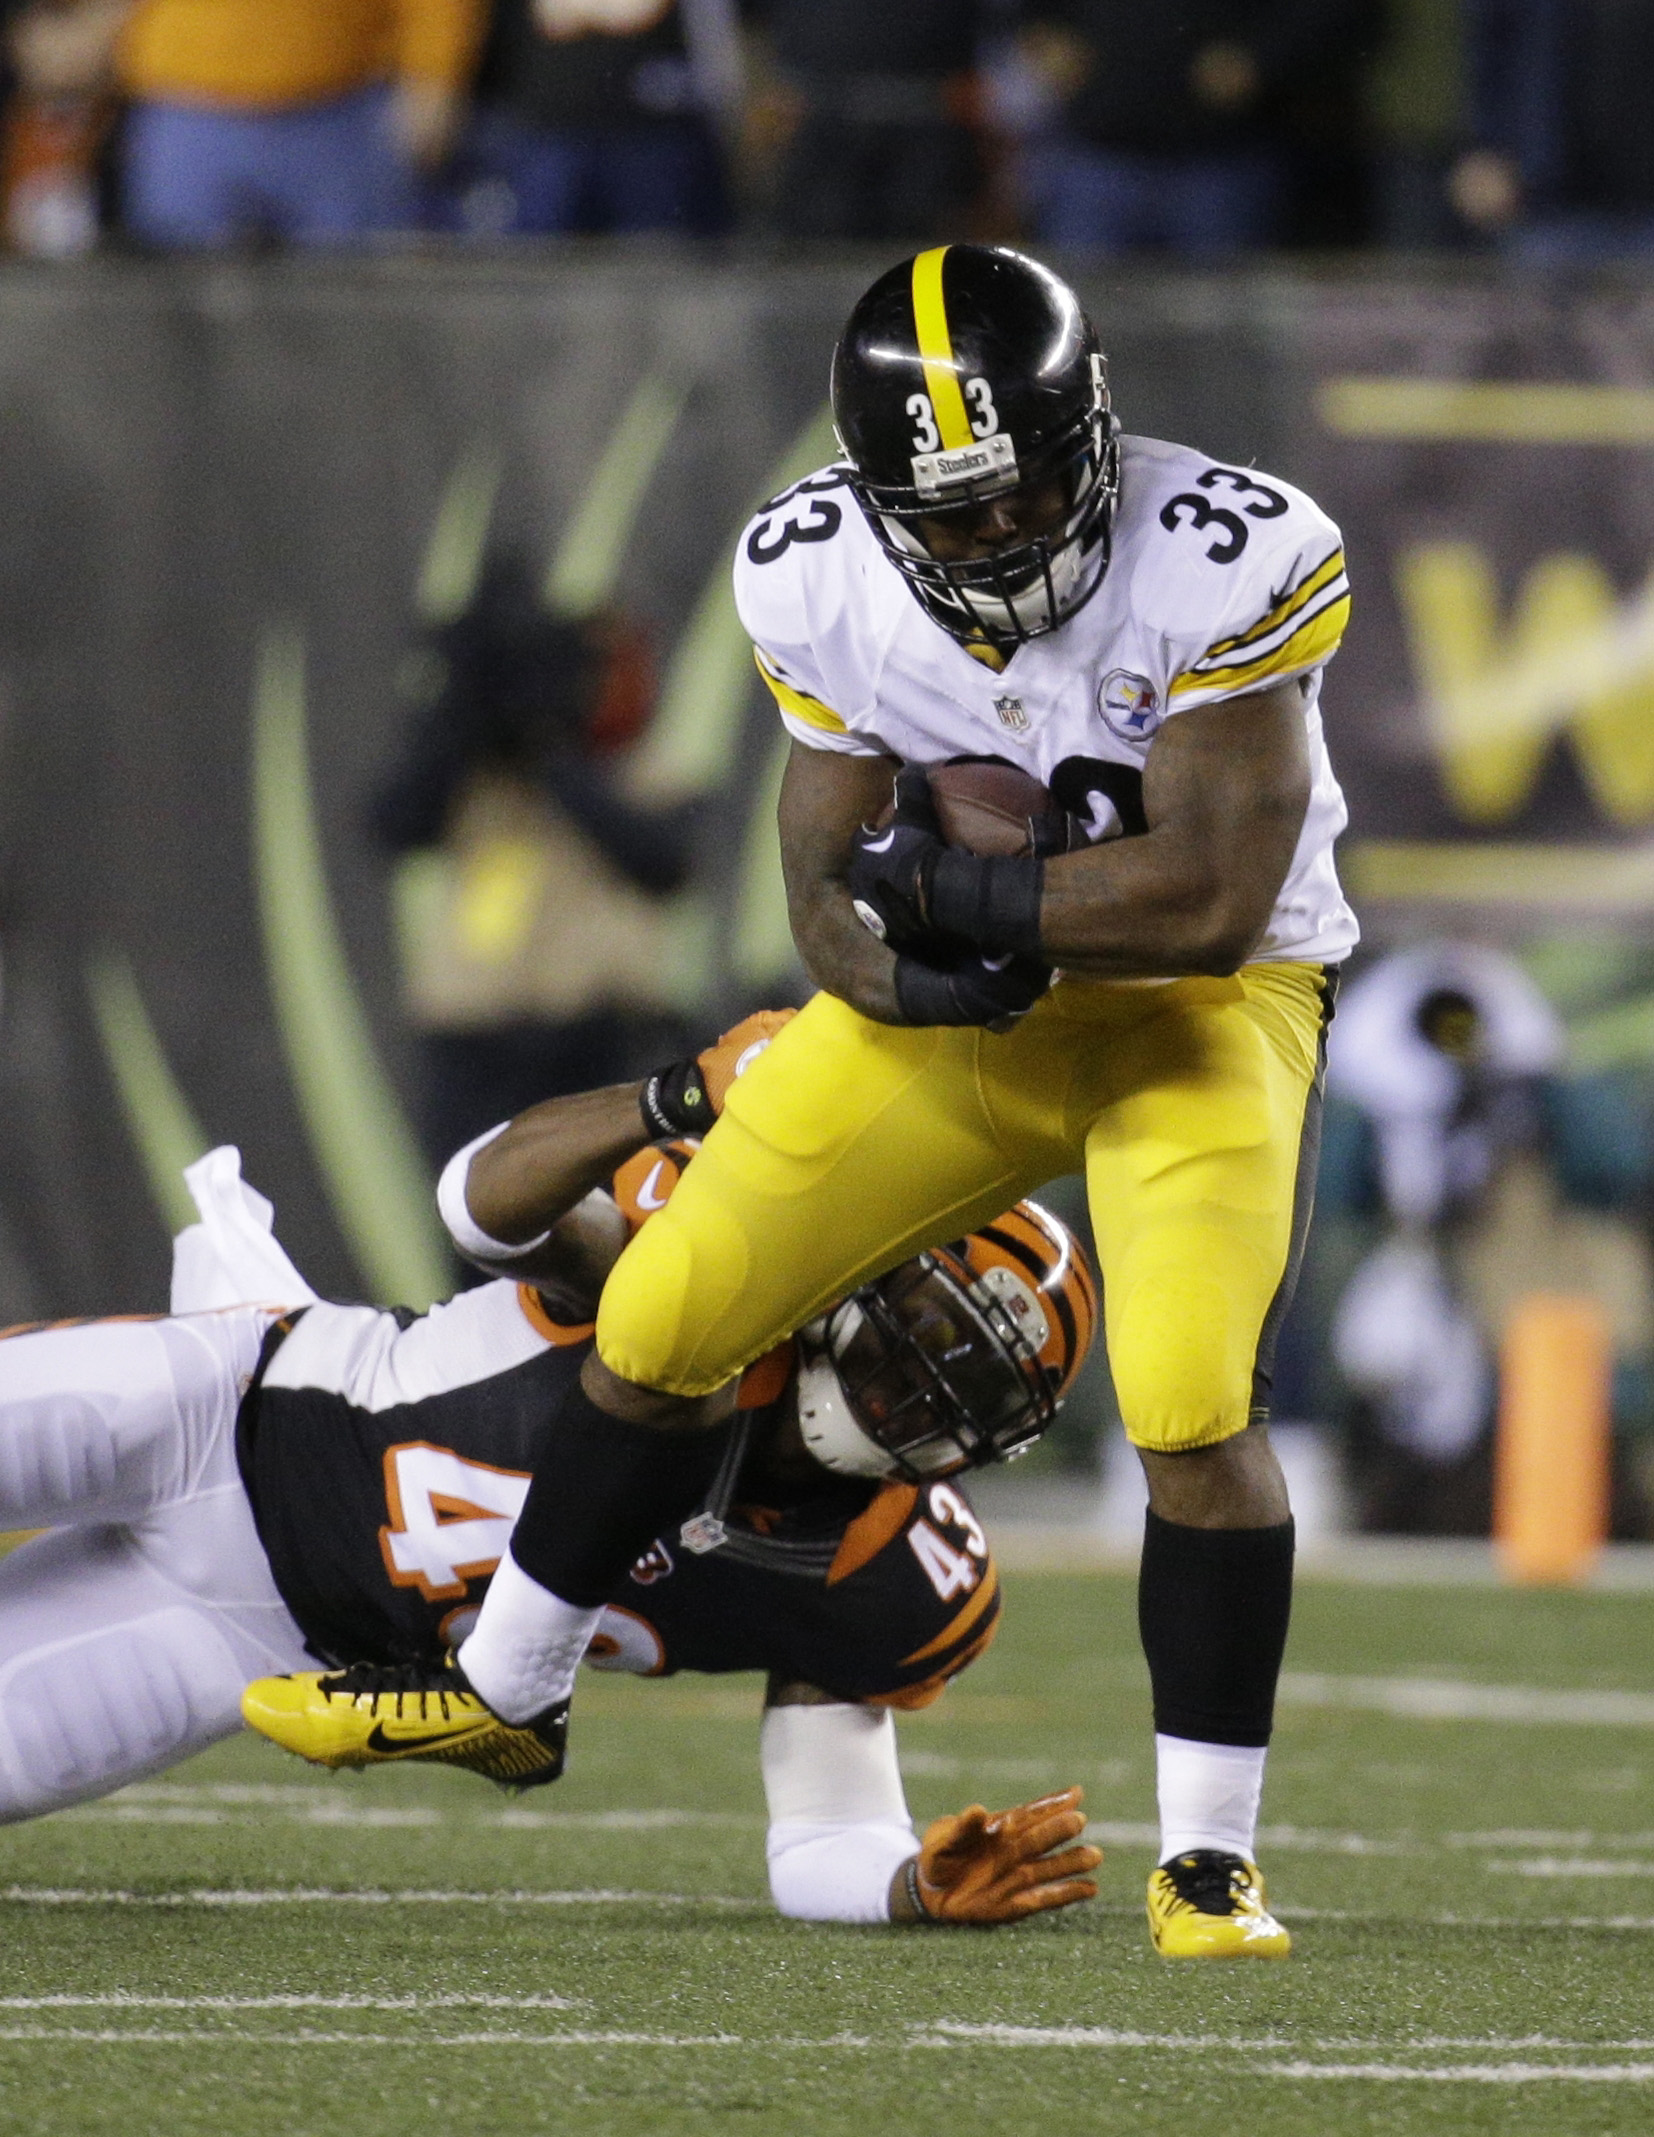 Pittsburgh Steelers' Fitzgerald Toussaint (33) is tackled by Cincinnati Bengals' George Iloka (43) during the first half of an NFL wild-card playoff football game Saturday, Jan. 9, 2016, in Cincinnati. (AP Photo/John Minchillo)